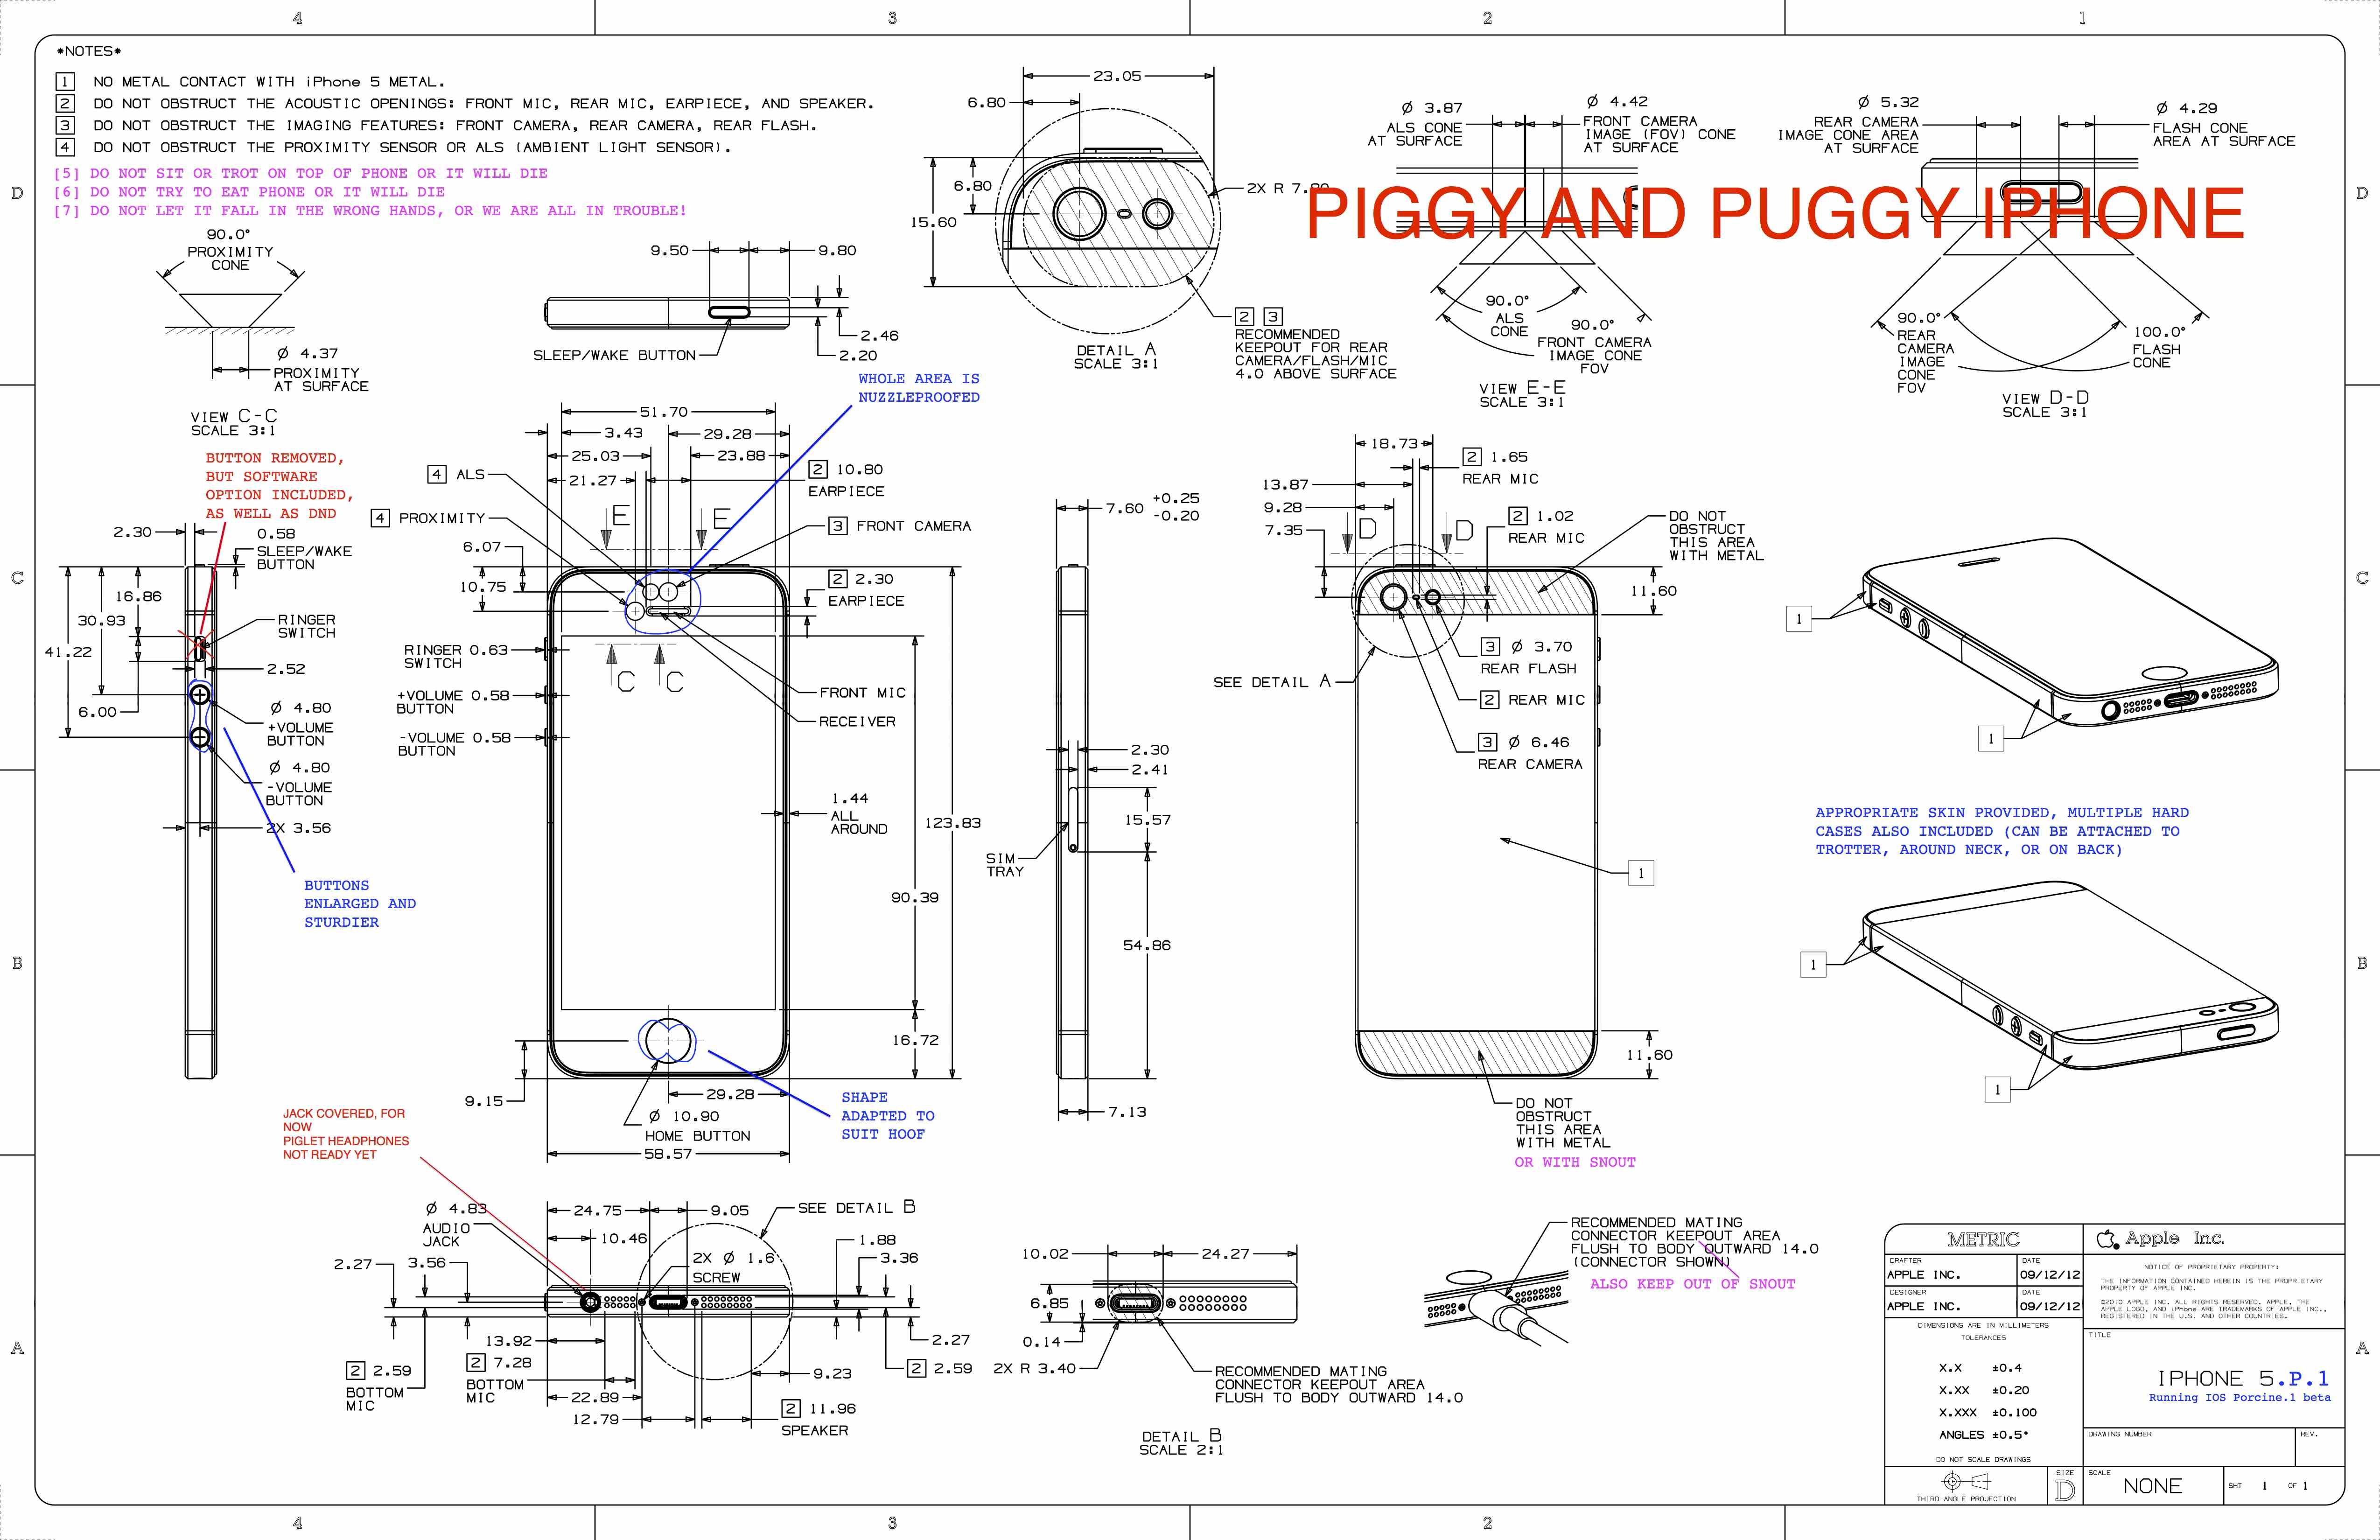 Technical drawing google search blueprint backgrounds pinterest explore technical drawings iphone 5s and more malvernweather Gallery